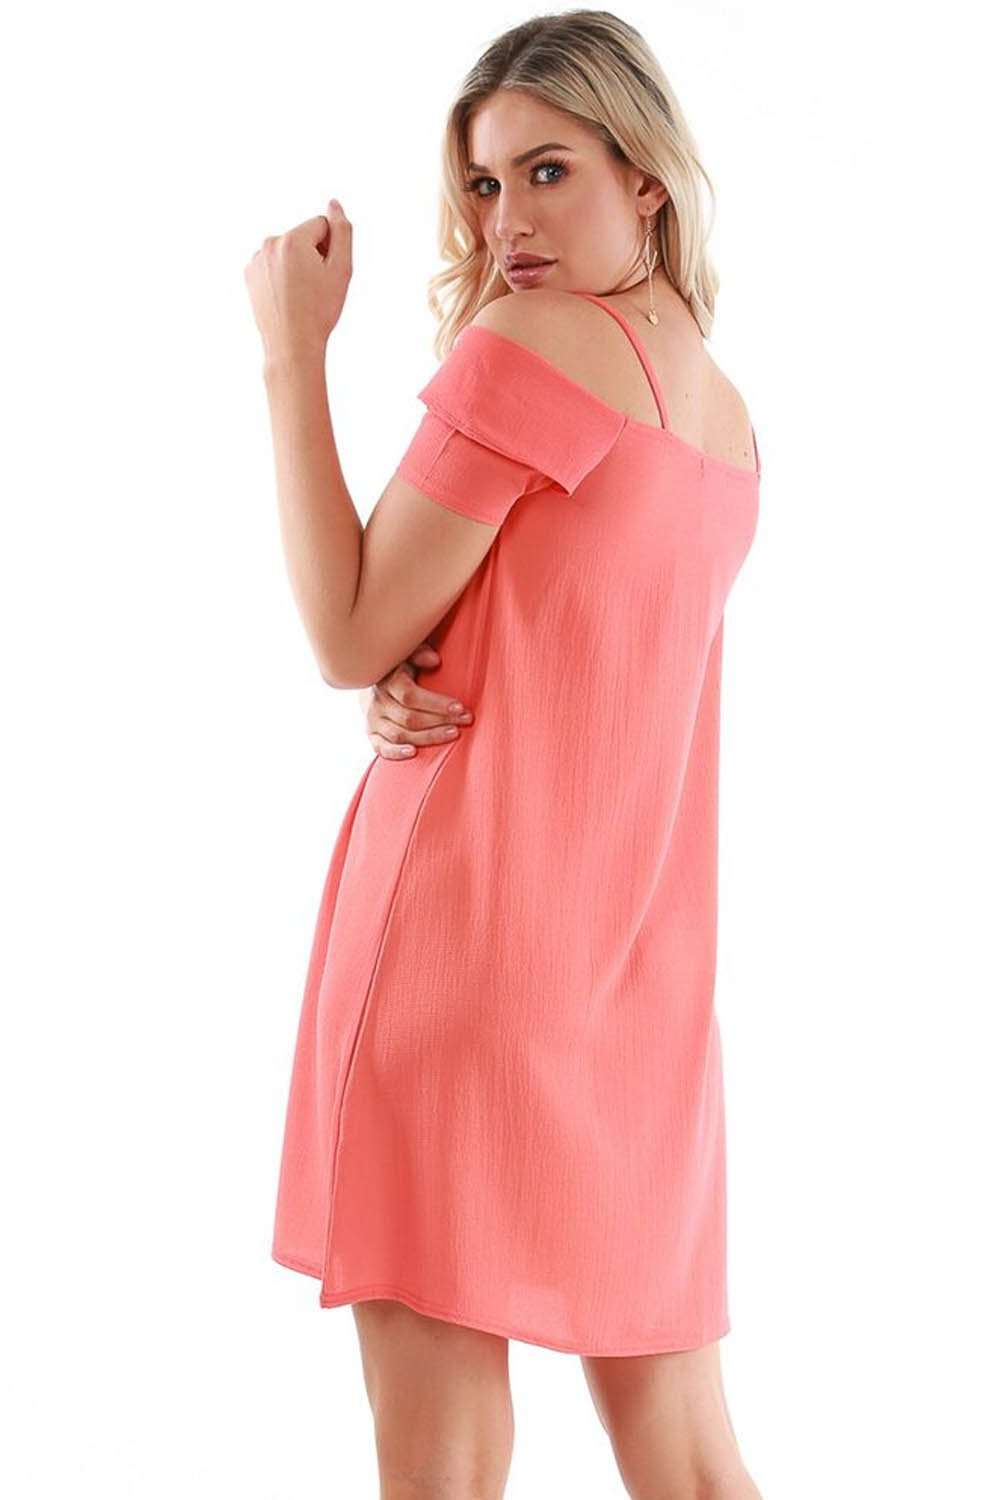 Coral Strappy Off Shoulder A-line Mini Dress - bejealous-com